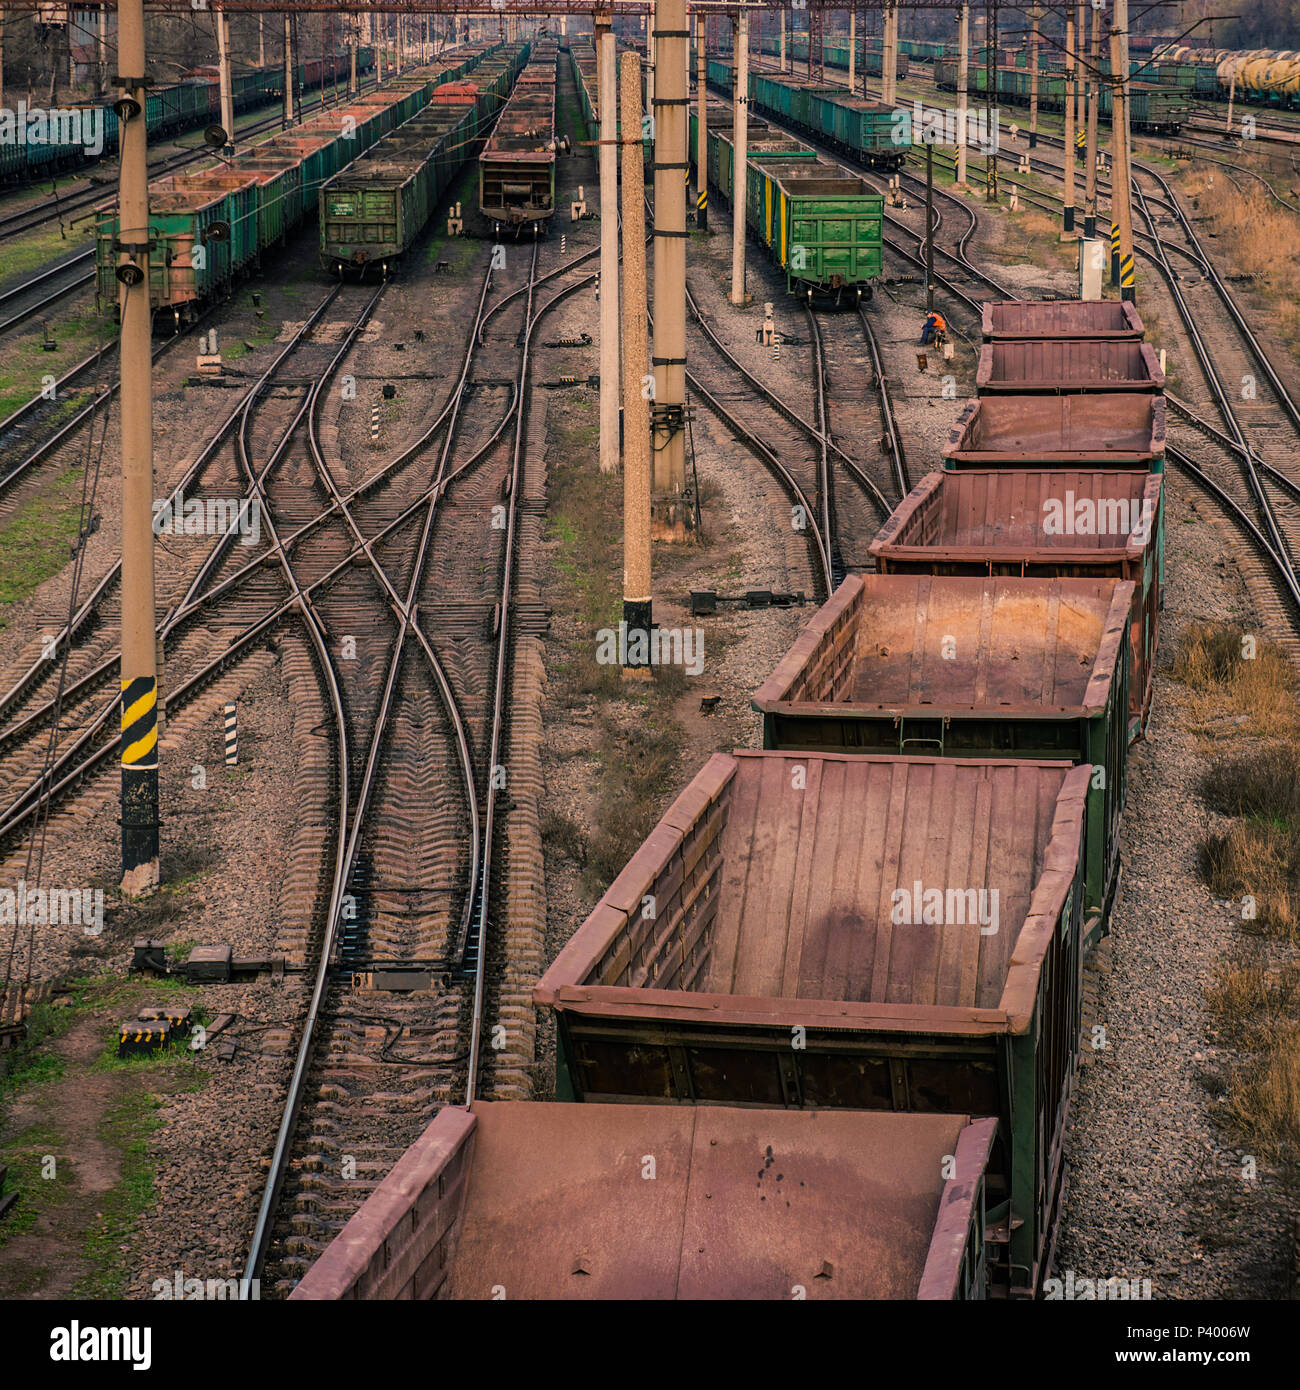 industrial sorting railway station. Processing and enrichment of iron ore. - Stock Image